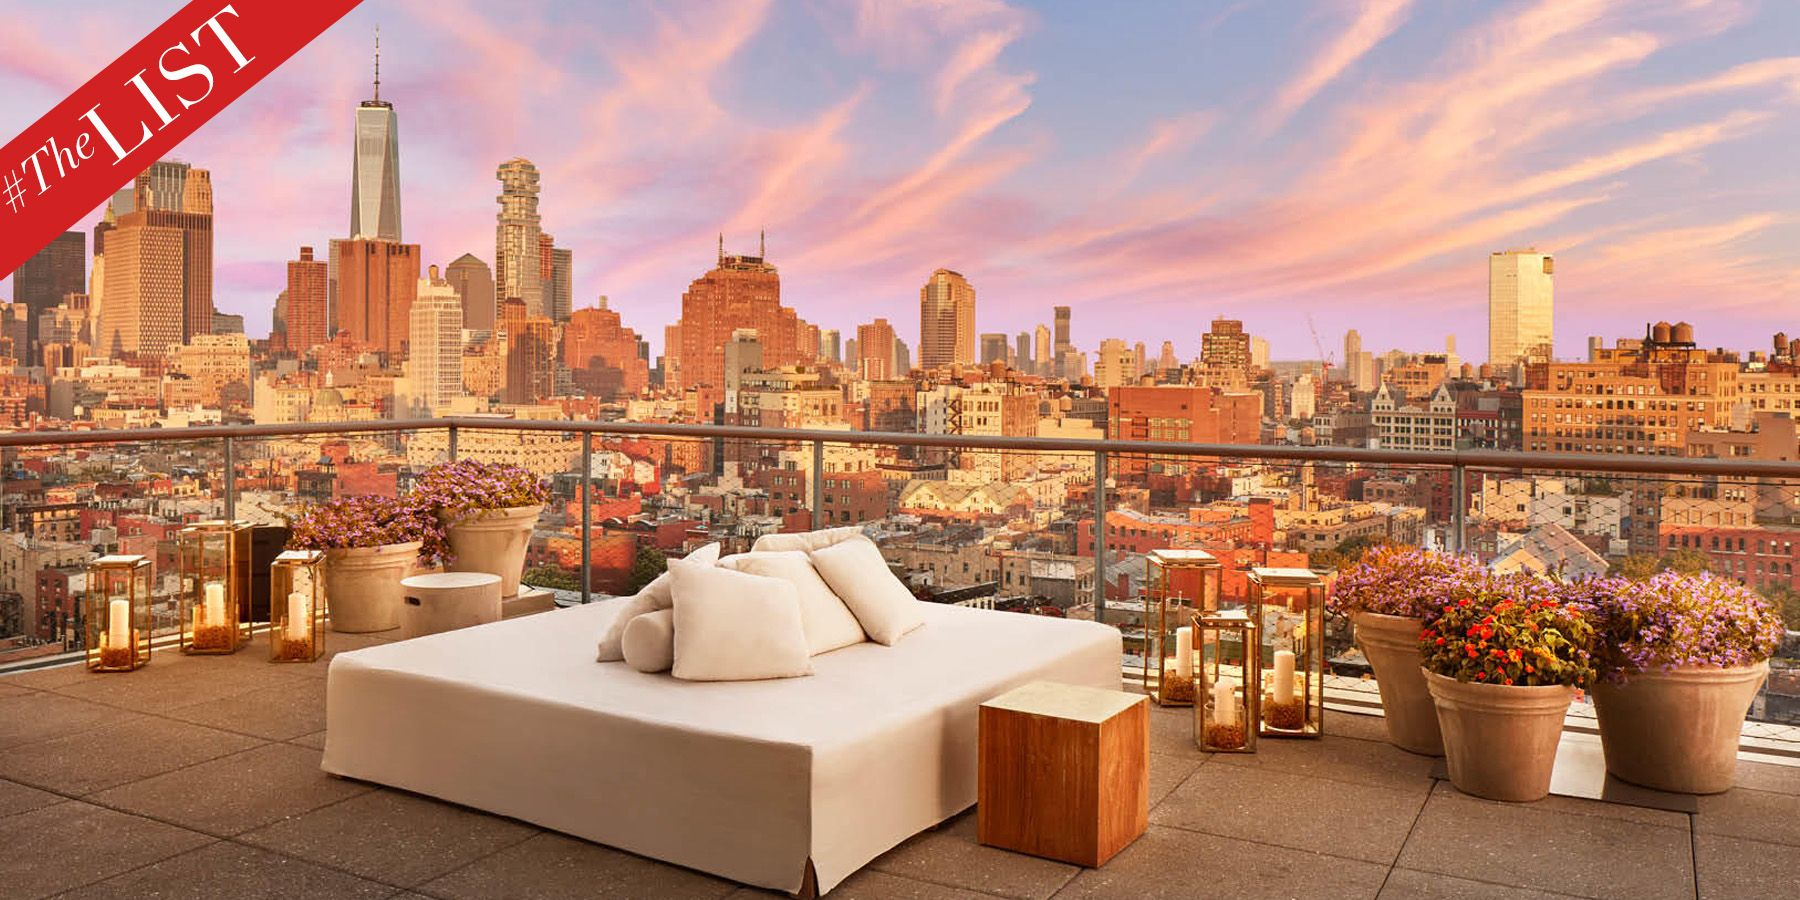 #TheLIST: 21 of the Best Rooftop Bars in NYC